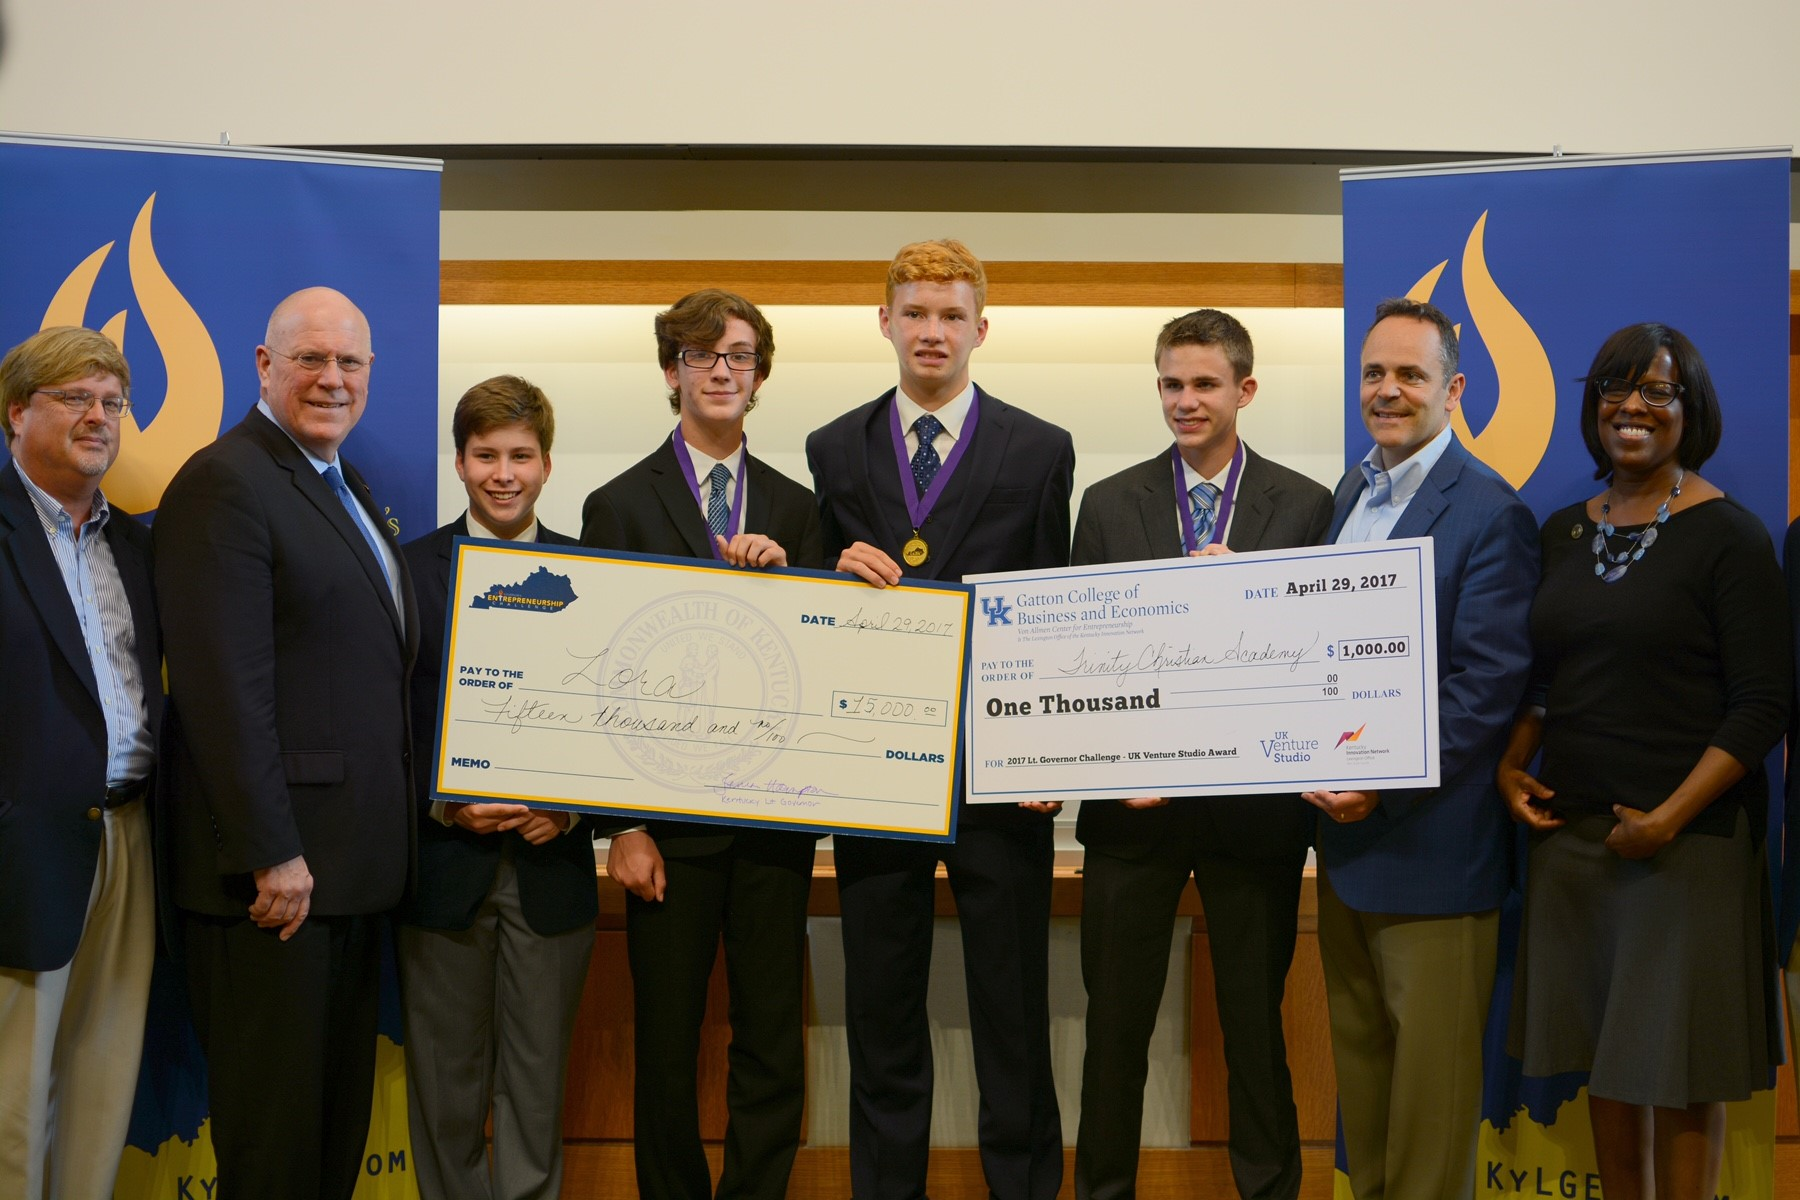 The third-place team, Zora, was from Fayette County and won $15,000 in scholarships. Their company proposed a business idea involving drone technology and digital production.